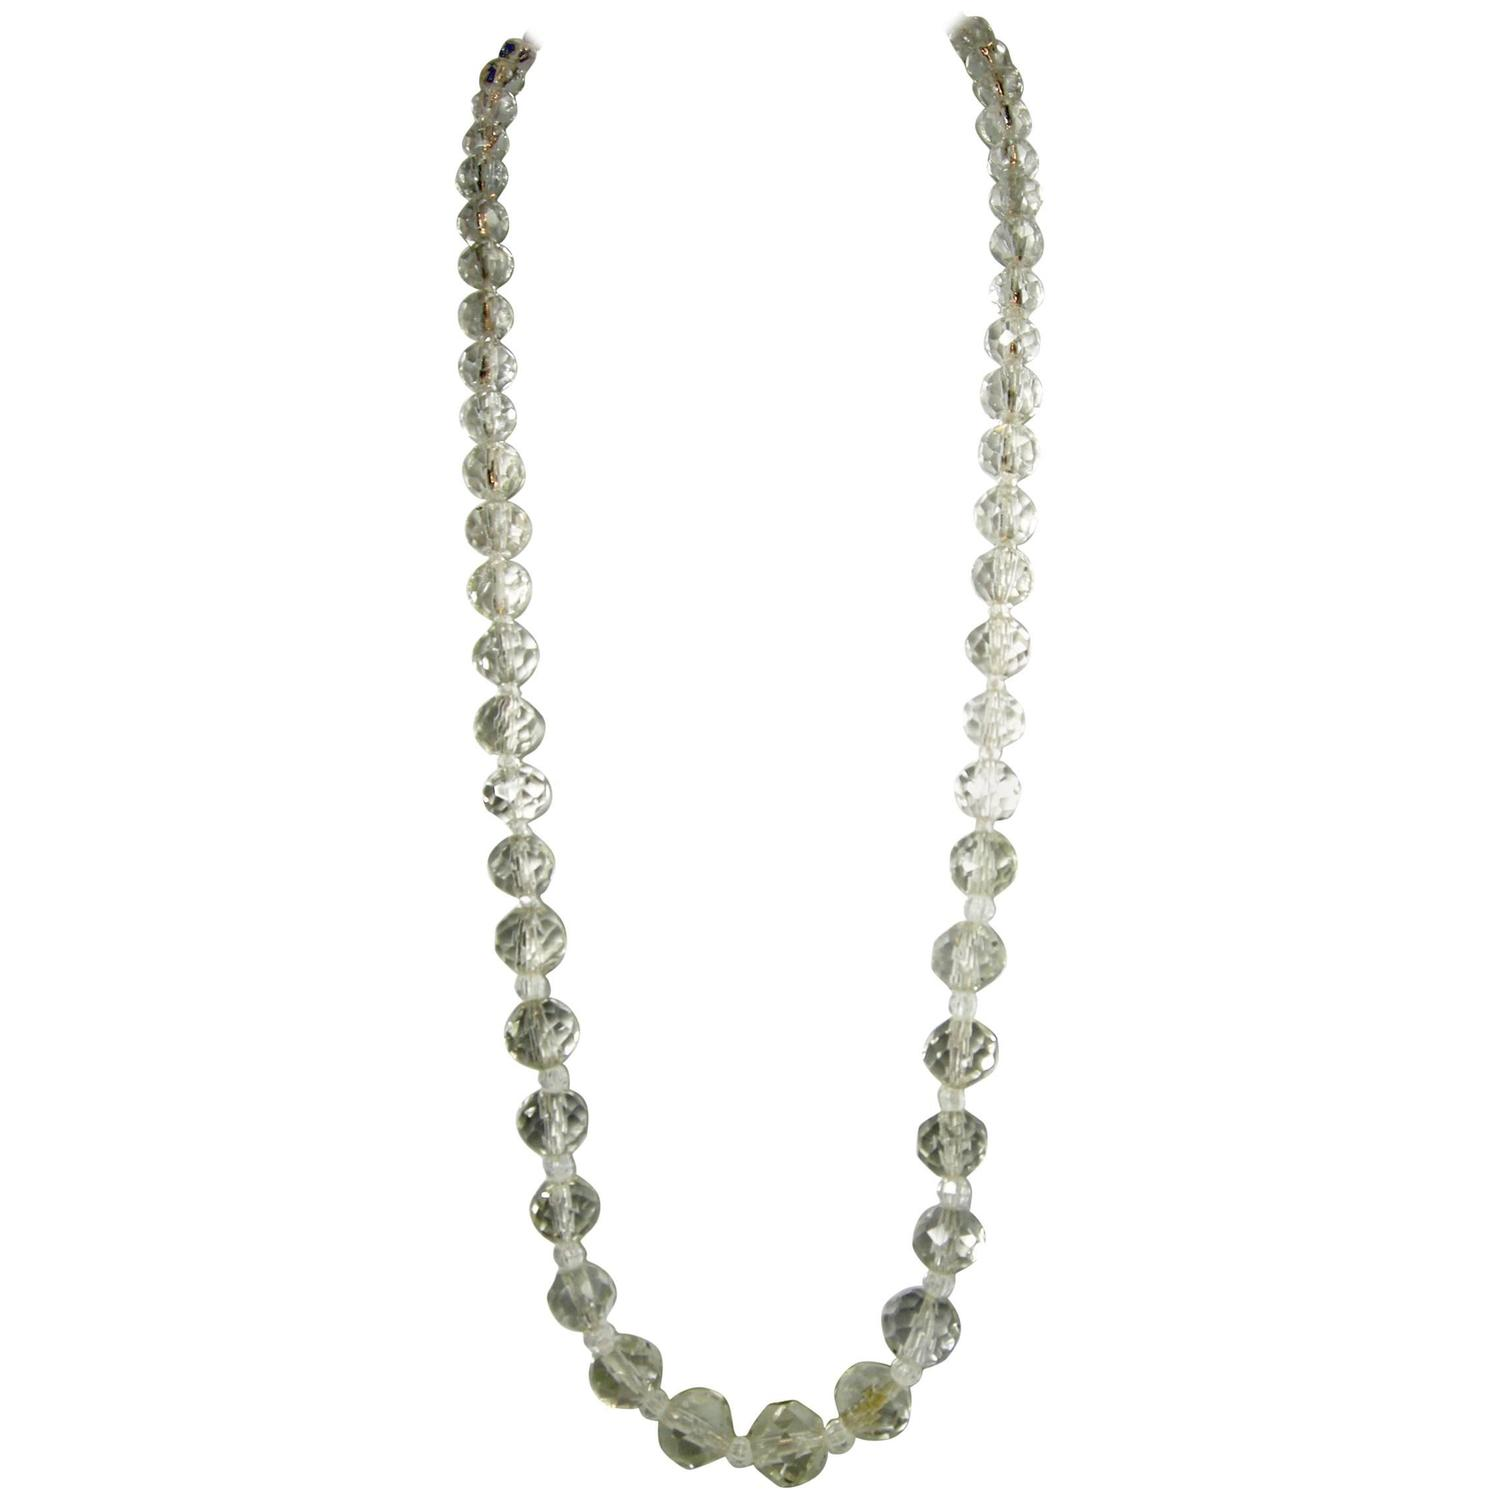 Vintage S Crystal Bead Necklace At 1stdibs